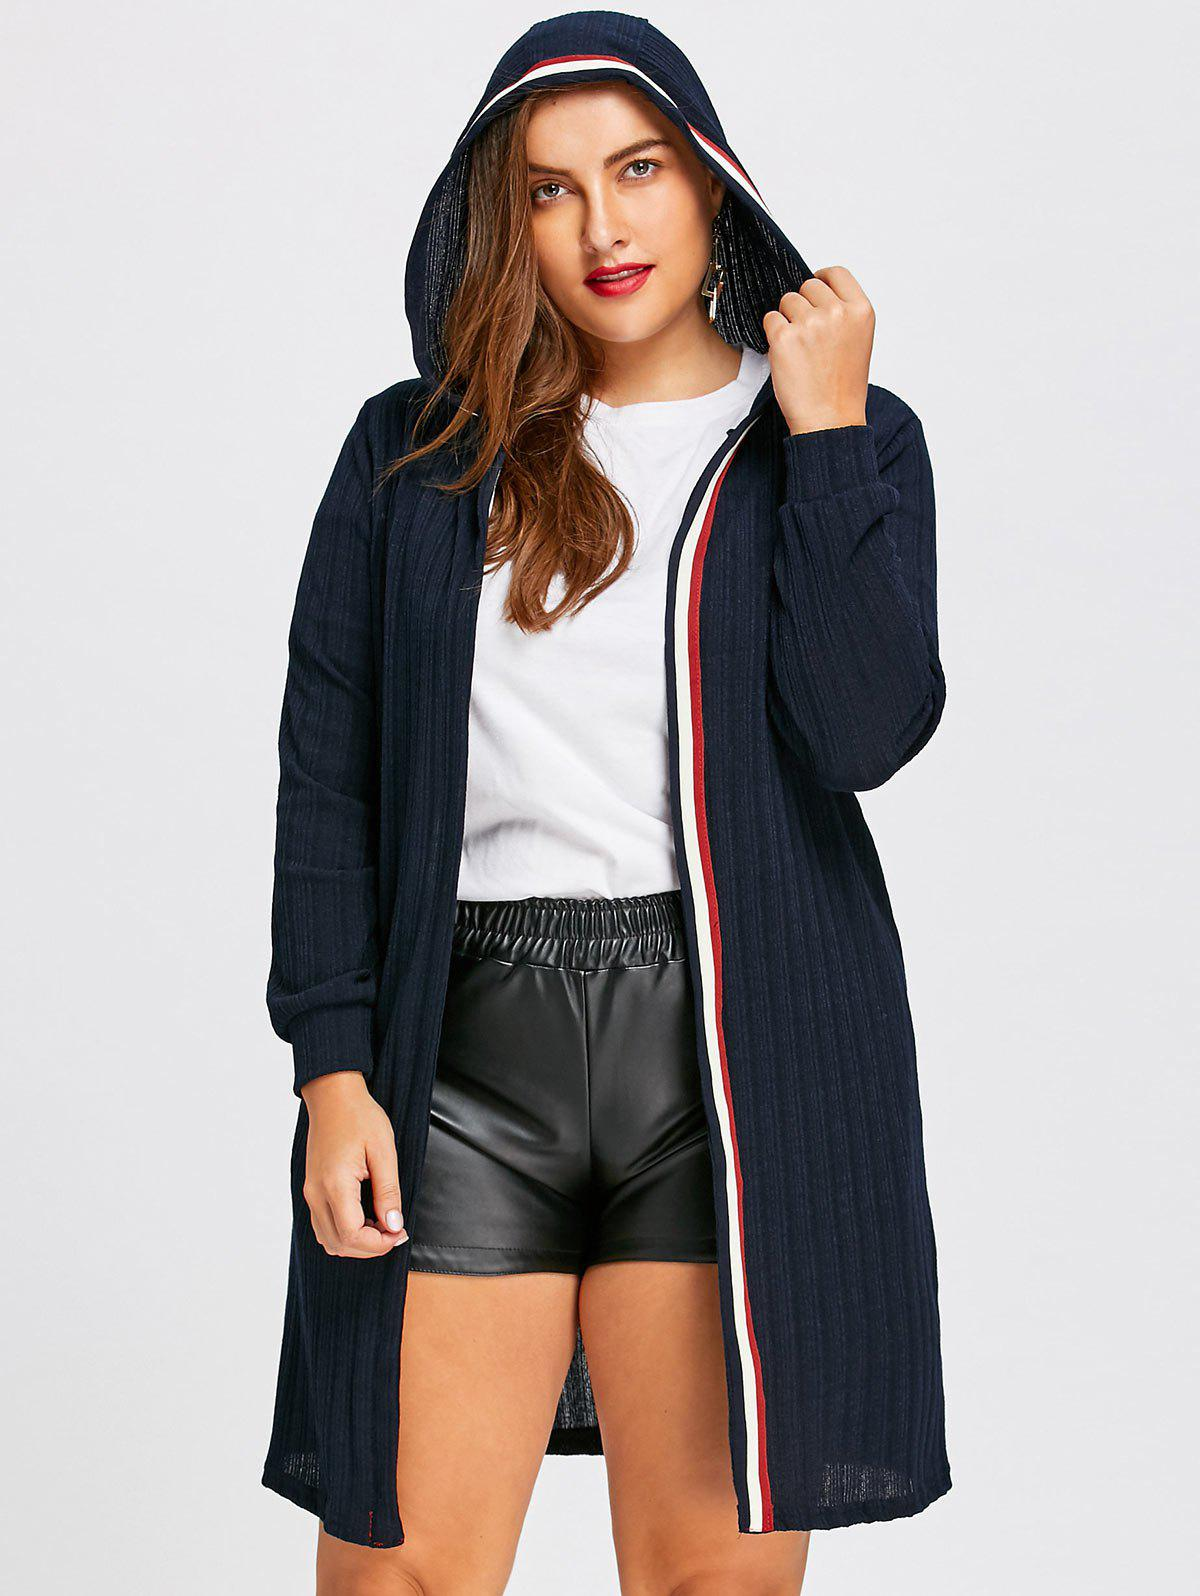 Ribbed Longline  Plus Size Hooded CardiganWOMEN<br><br>Size: 5XL; Color: PURPLISH BLUE; Type: Cardigans; Material: Polyester; Sleeve Length: Full; Collar: Hooded; Style: Fashion; Season: Fall,Winter; Pattern Type: Solid; Weight: 0.4700kg; Package Contents: 1 x Cardigan;